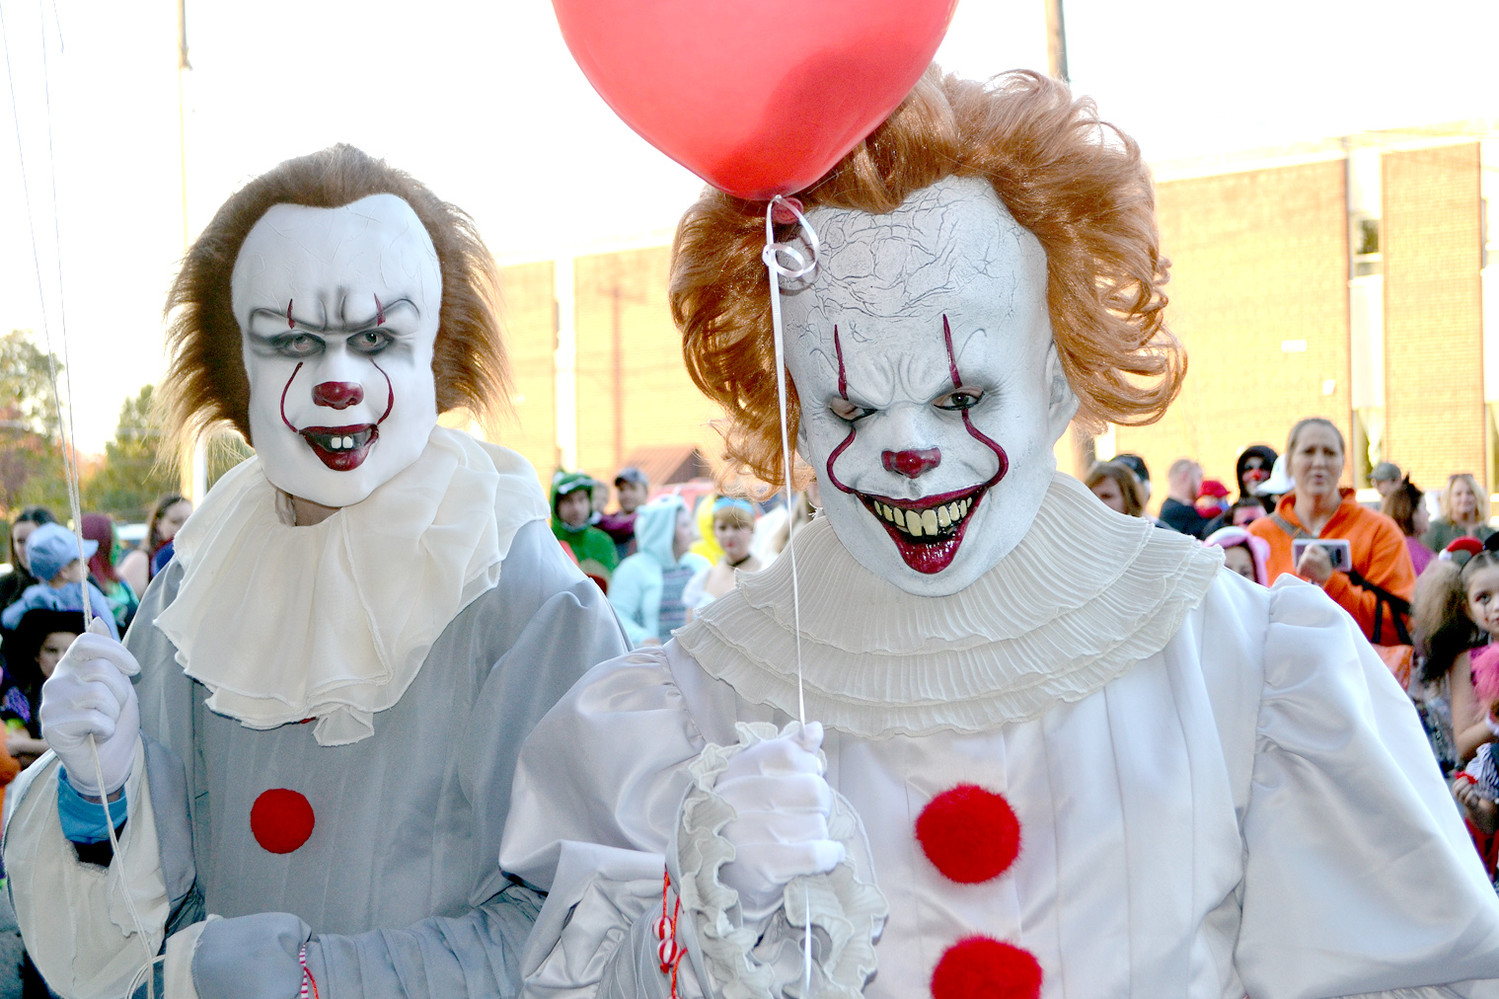 "THE COURTHOUSE SQUARE was filled with clowns from the movie ""It."" Though scary looking given their context, the clowns also fit into the friendly atmosphere of the Block Party."